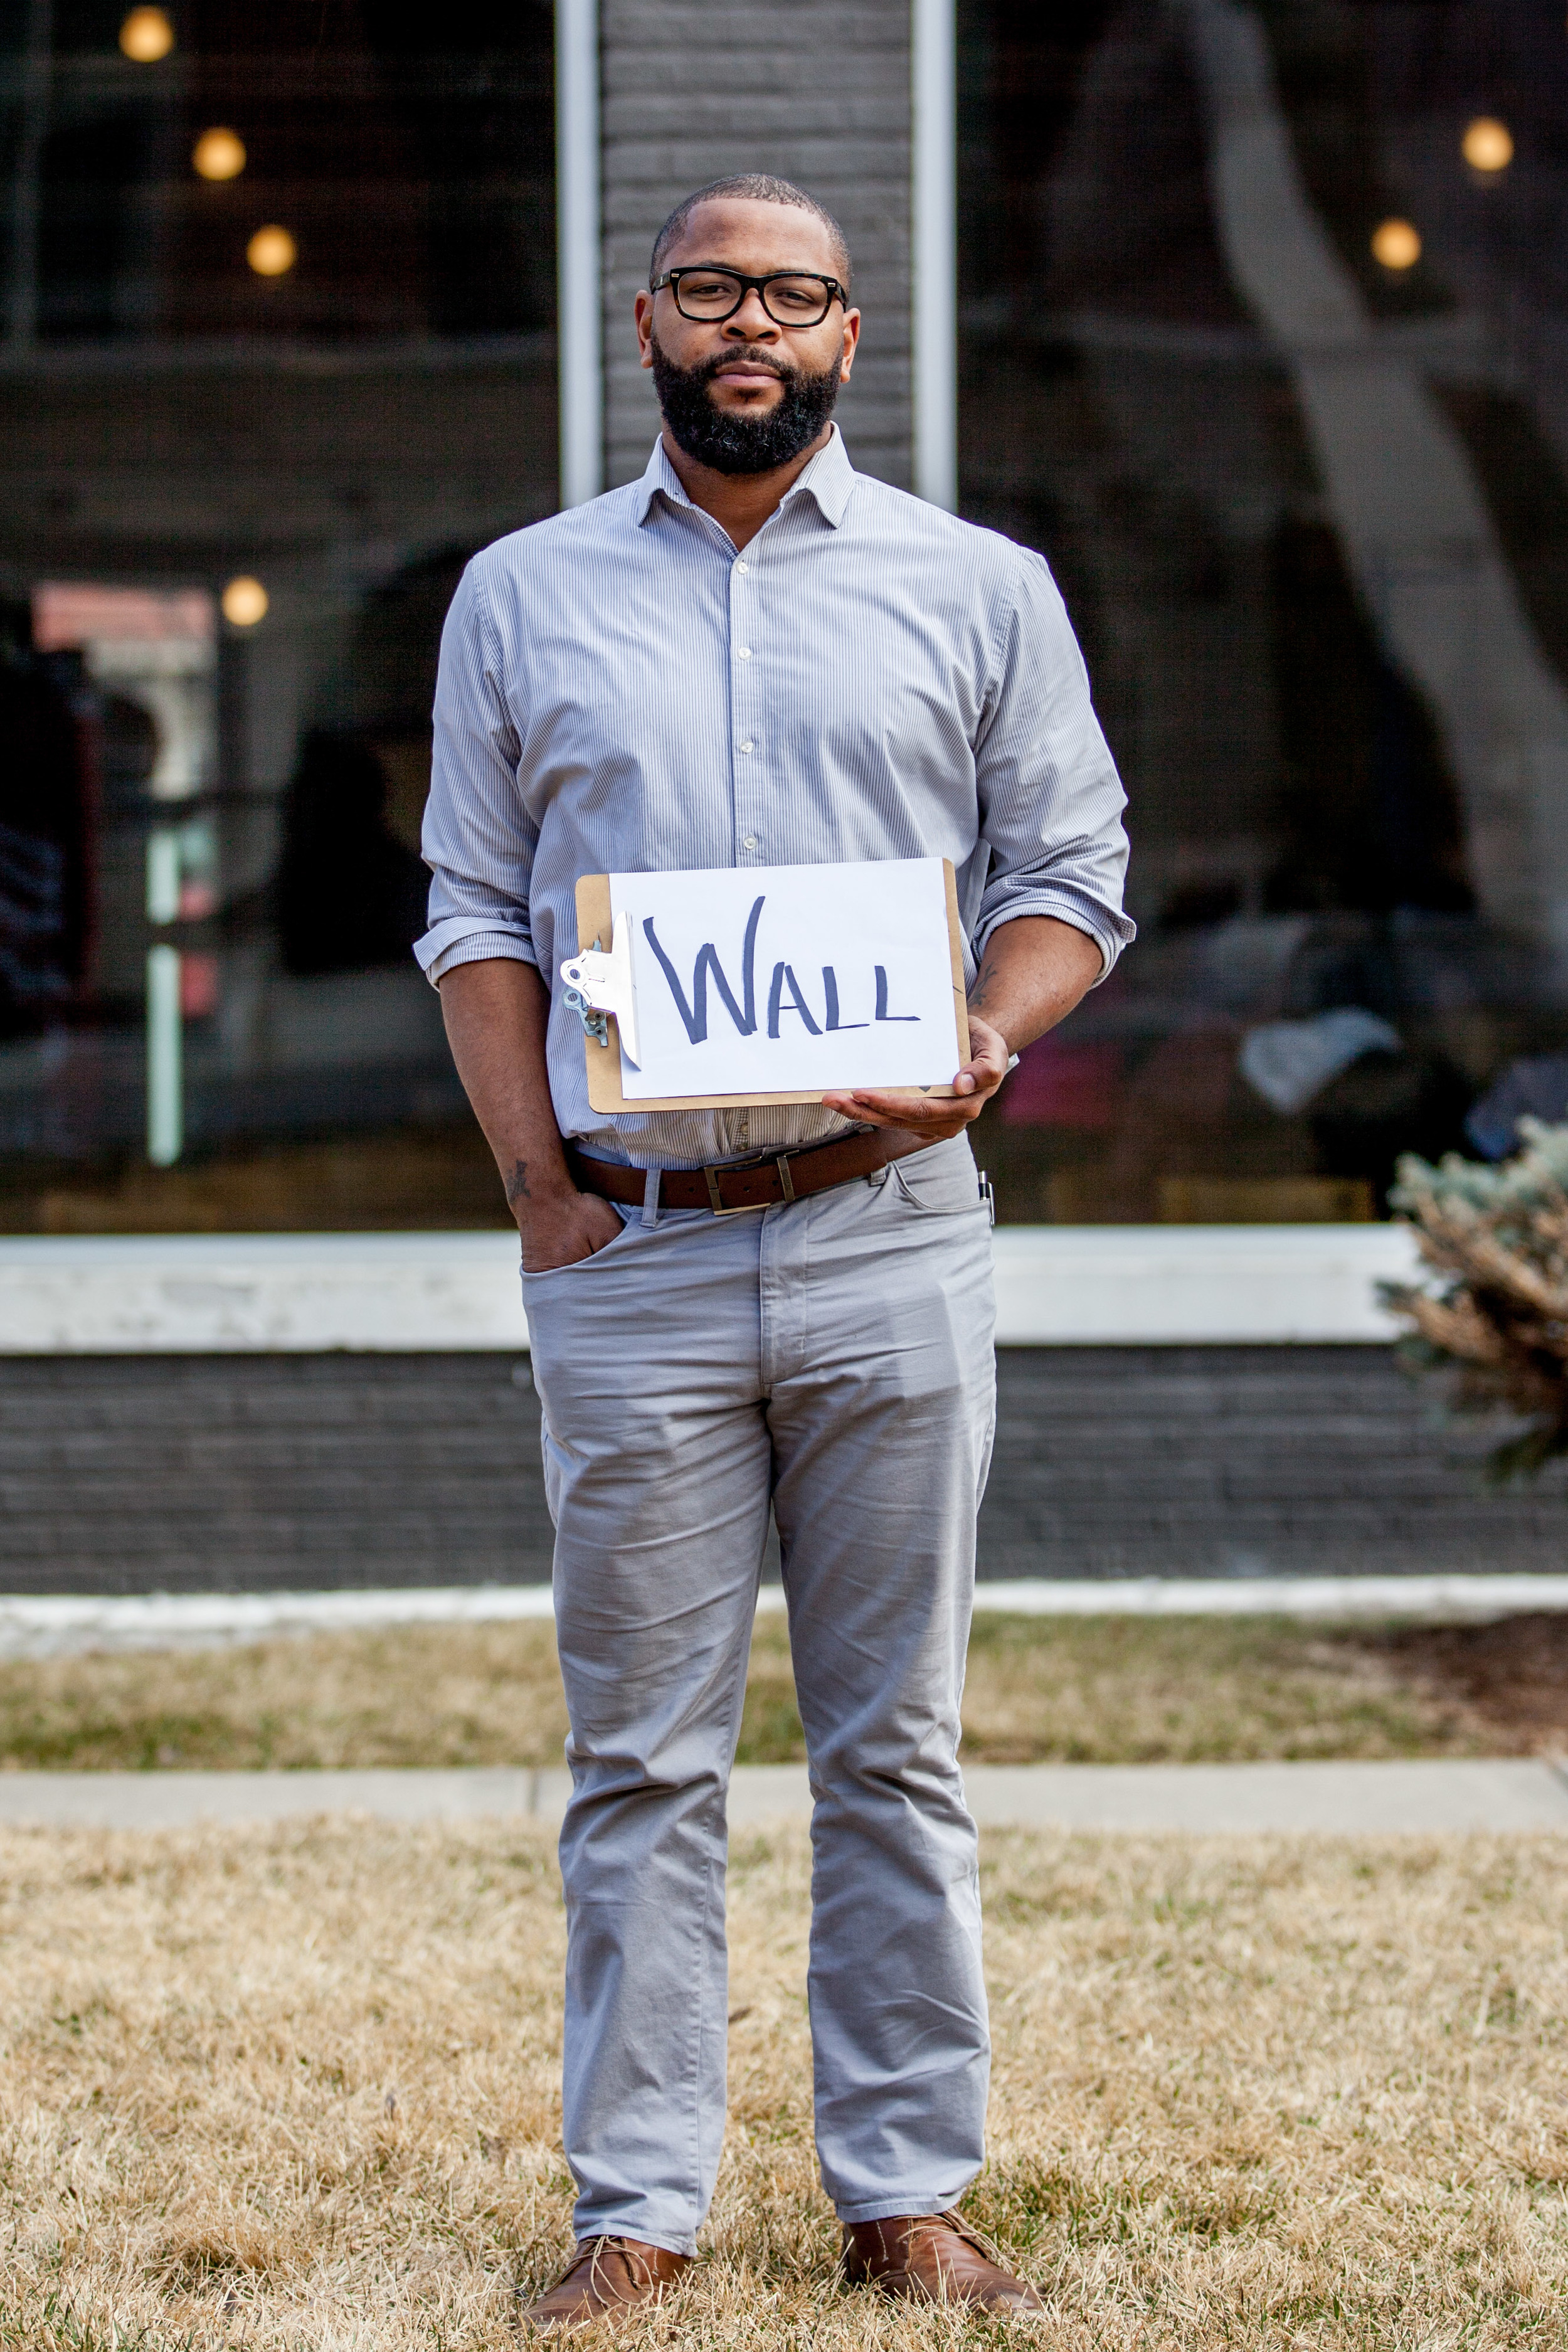 Man standing outside holding a sign that says wall.